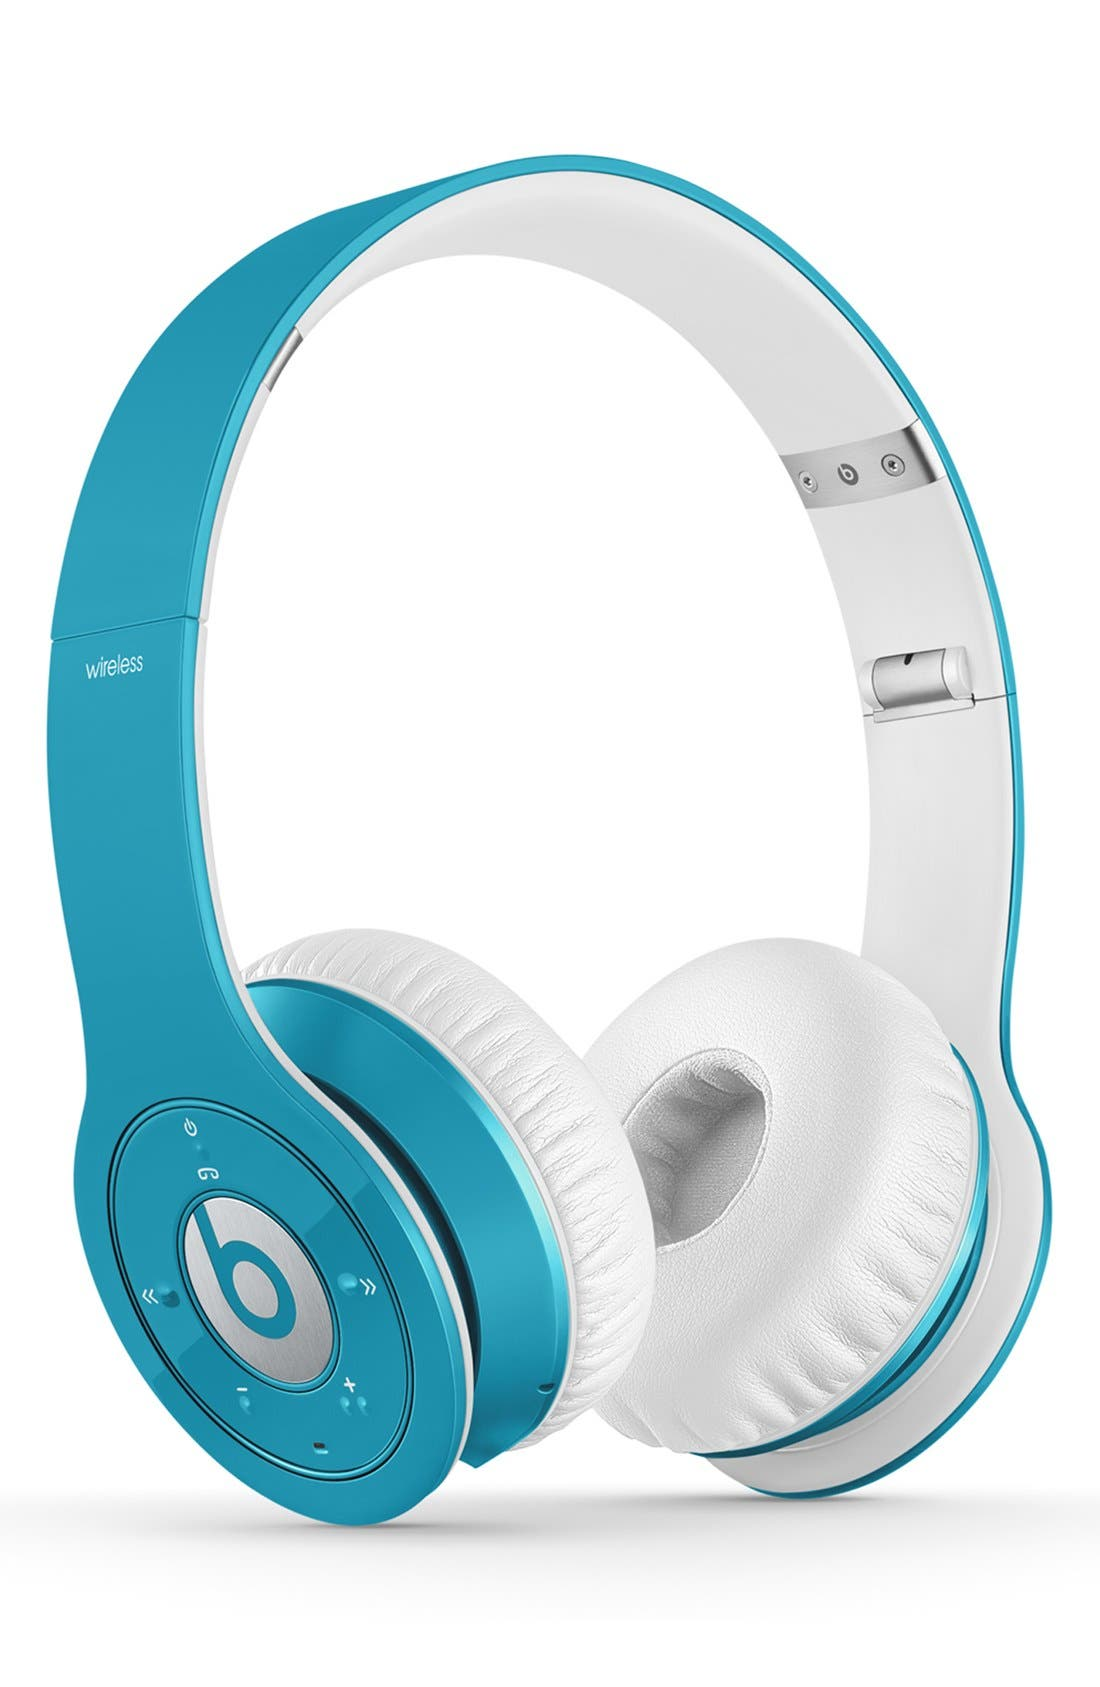 Main Image - Beats by Dr. Dre™ High Definition Wireless On-Ear Headphones